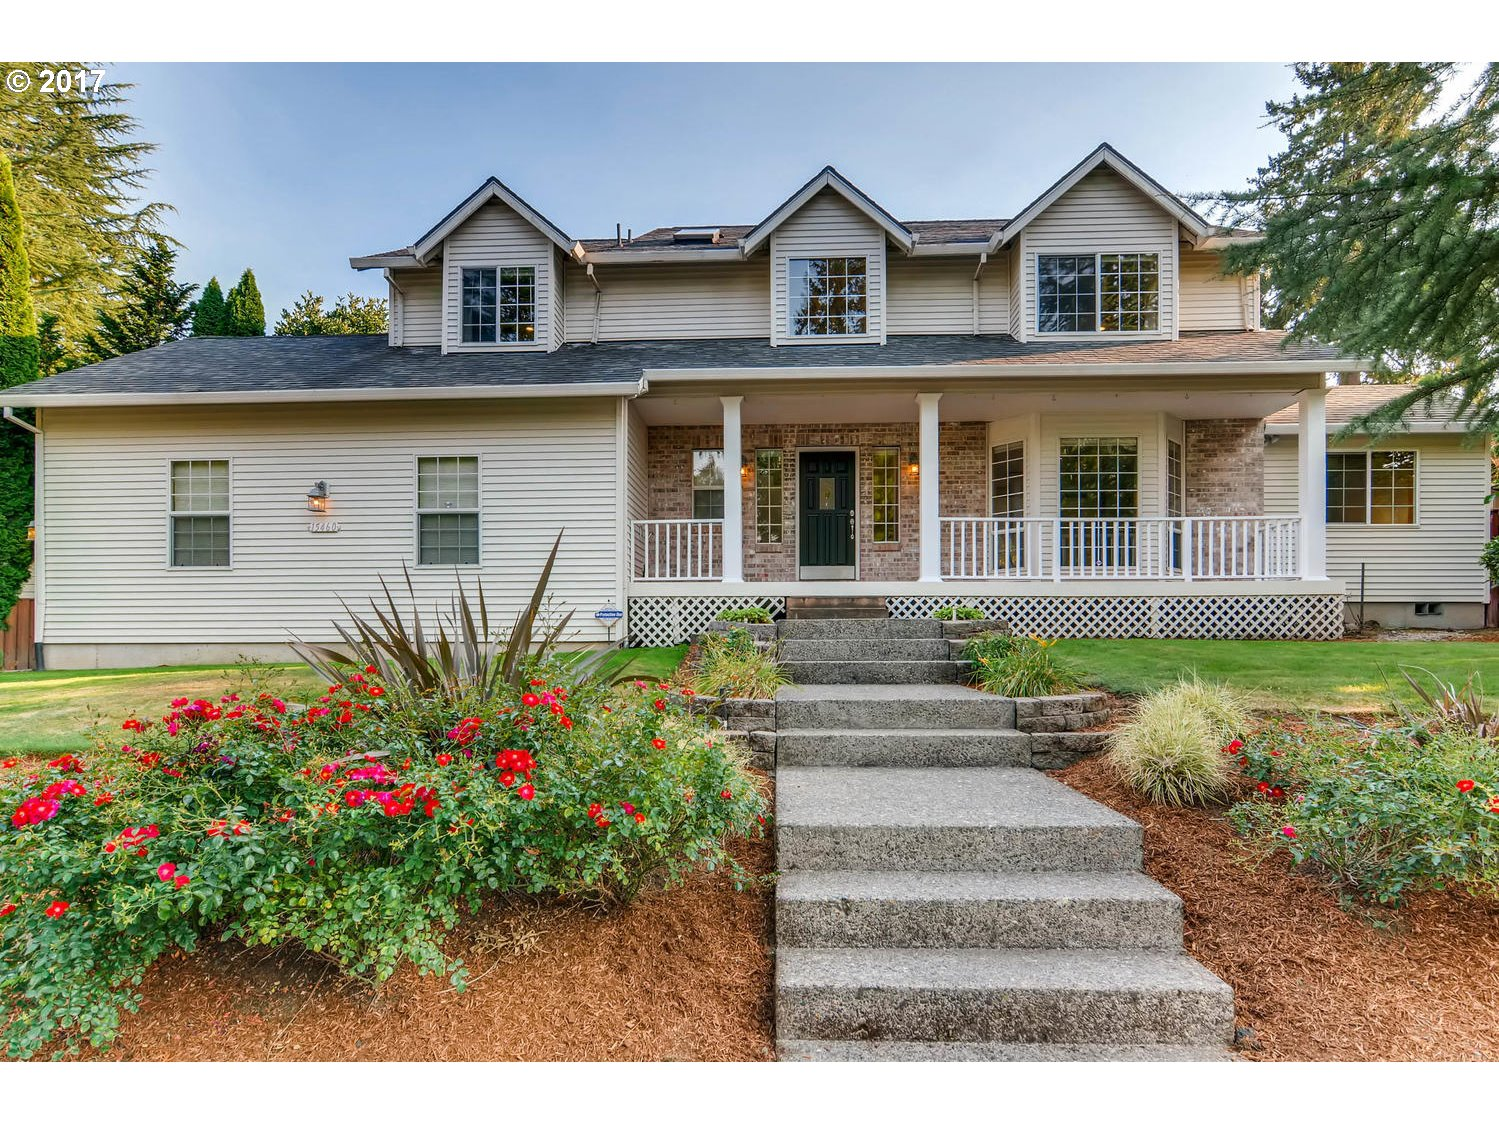 SAT OPEN 12-2:00 ~ Enjoy the abundance of quality indoor & outdoor space in his fantastic 4-bed plan situated on.24-acres in Vale Park. Secluded office off main, beautiful hardwoods, vaulted great room, big backyard w/Gazebo, garden area, swings for the kids, 2 sheds for storage. New interior paint, front door, hardware, extra storage in garage,New MOUNTAINSIDE HIGH, A/C, 1 yr AHS W. included.